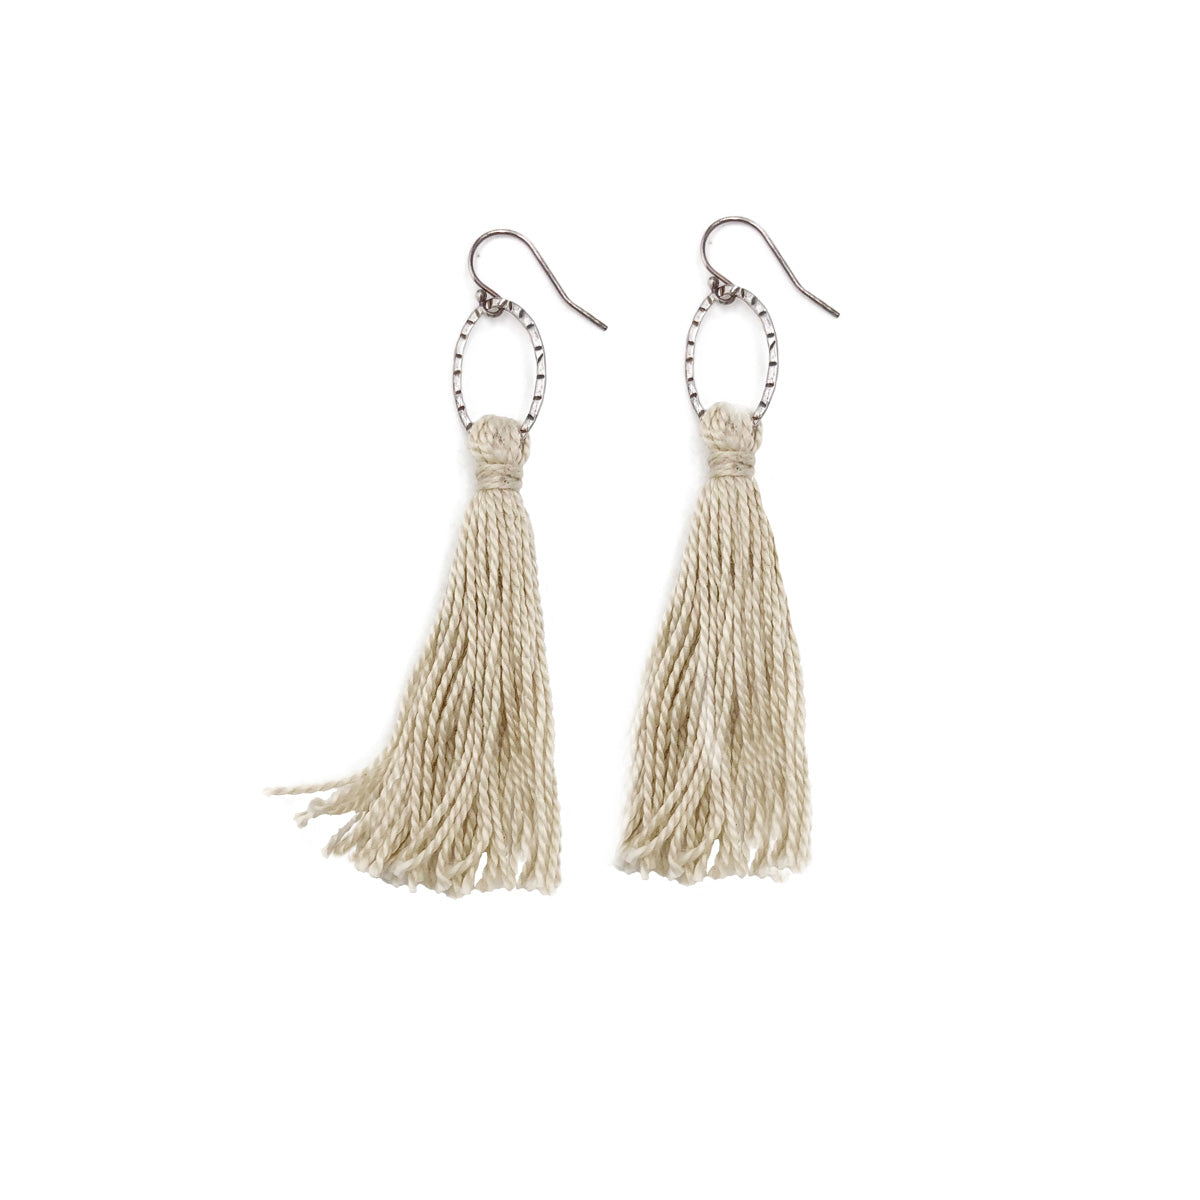 Tassel Earring Kit